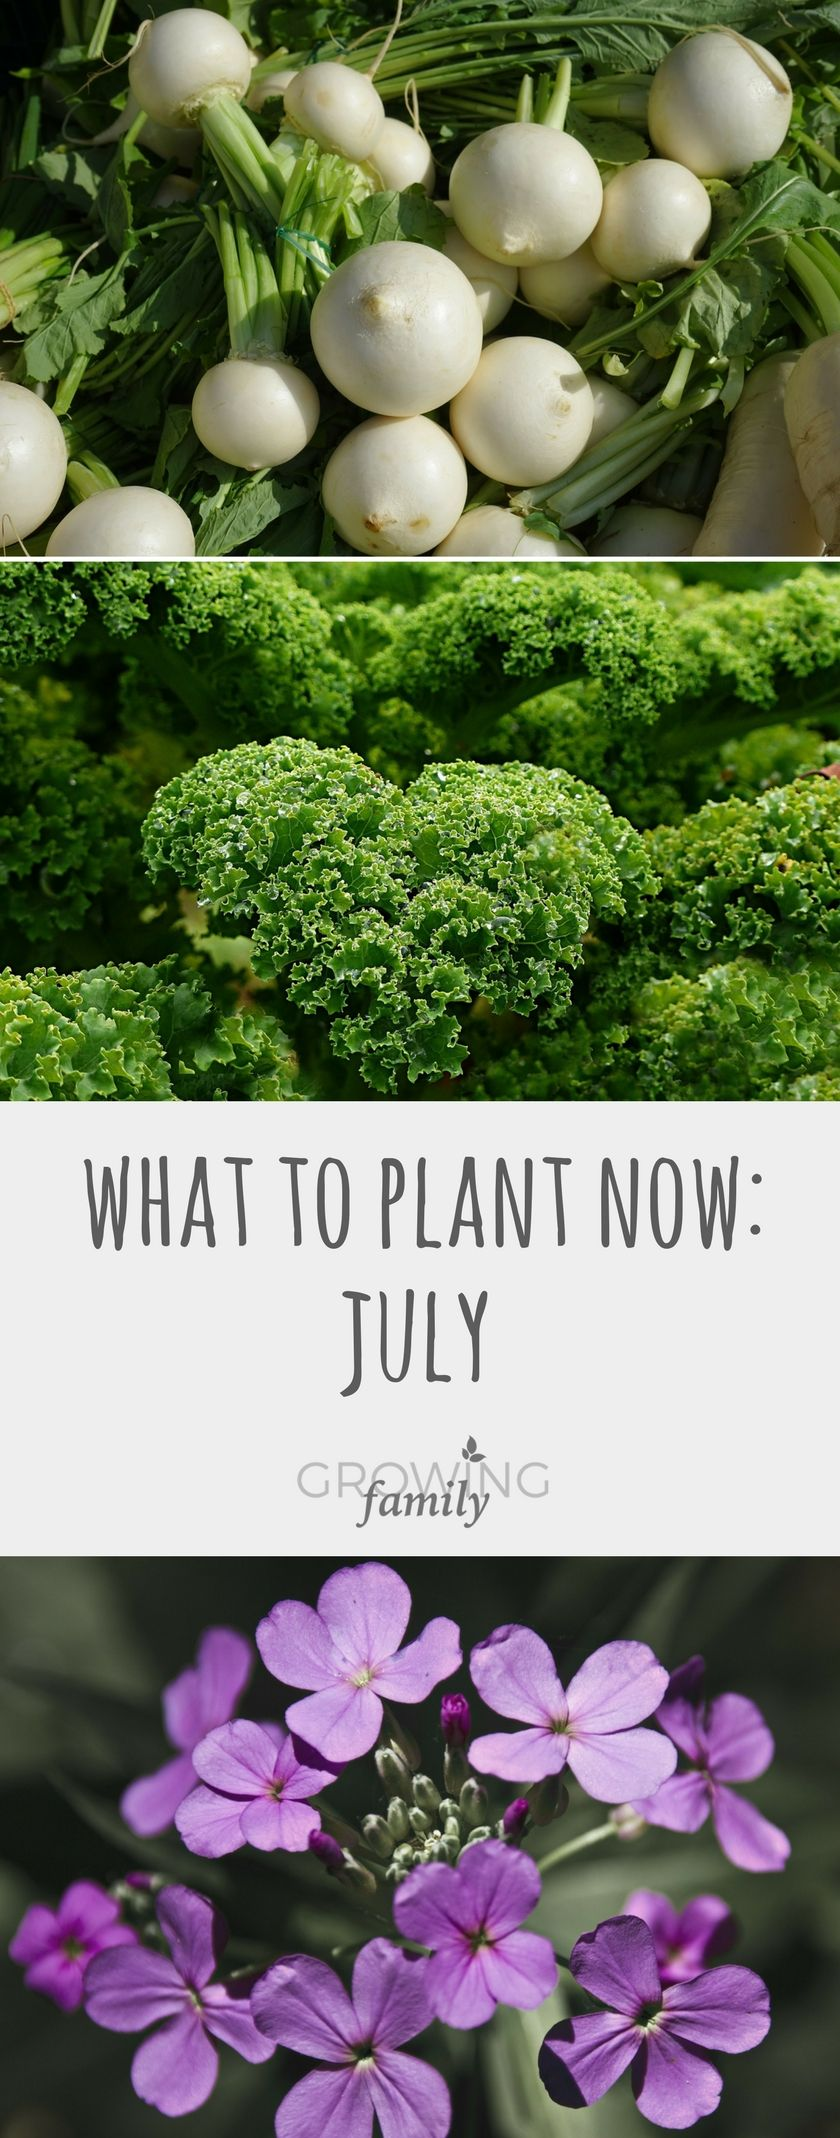 Gardening Calendar What to Plant in July Growing Family